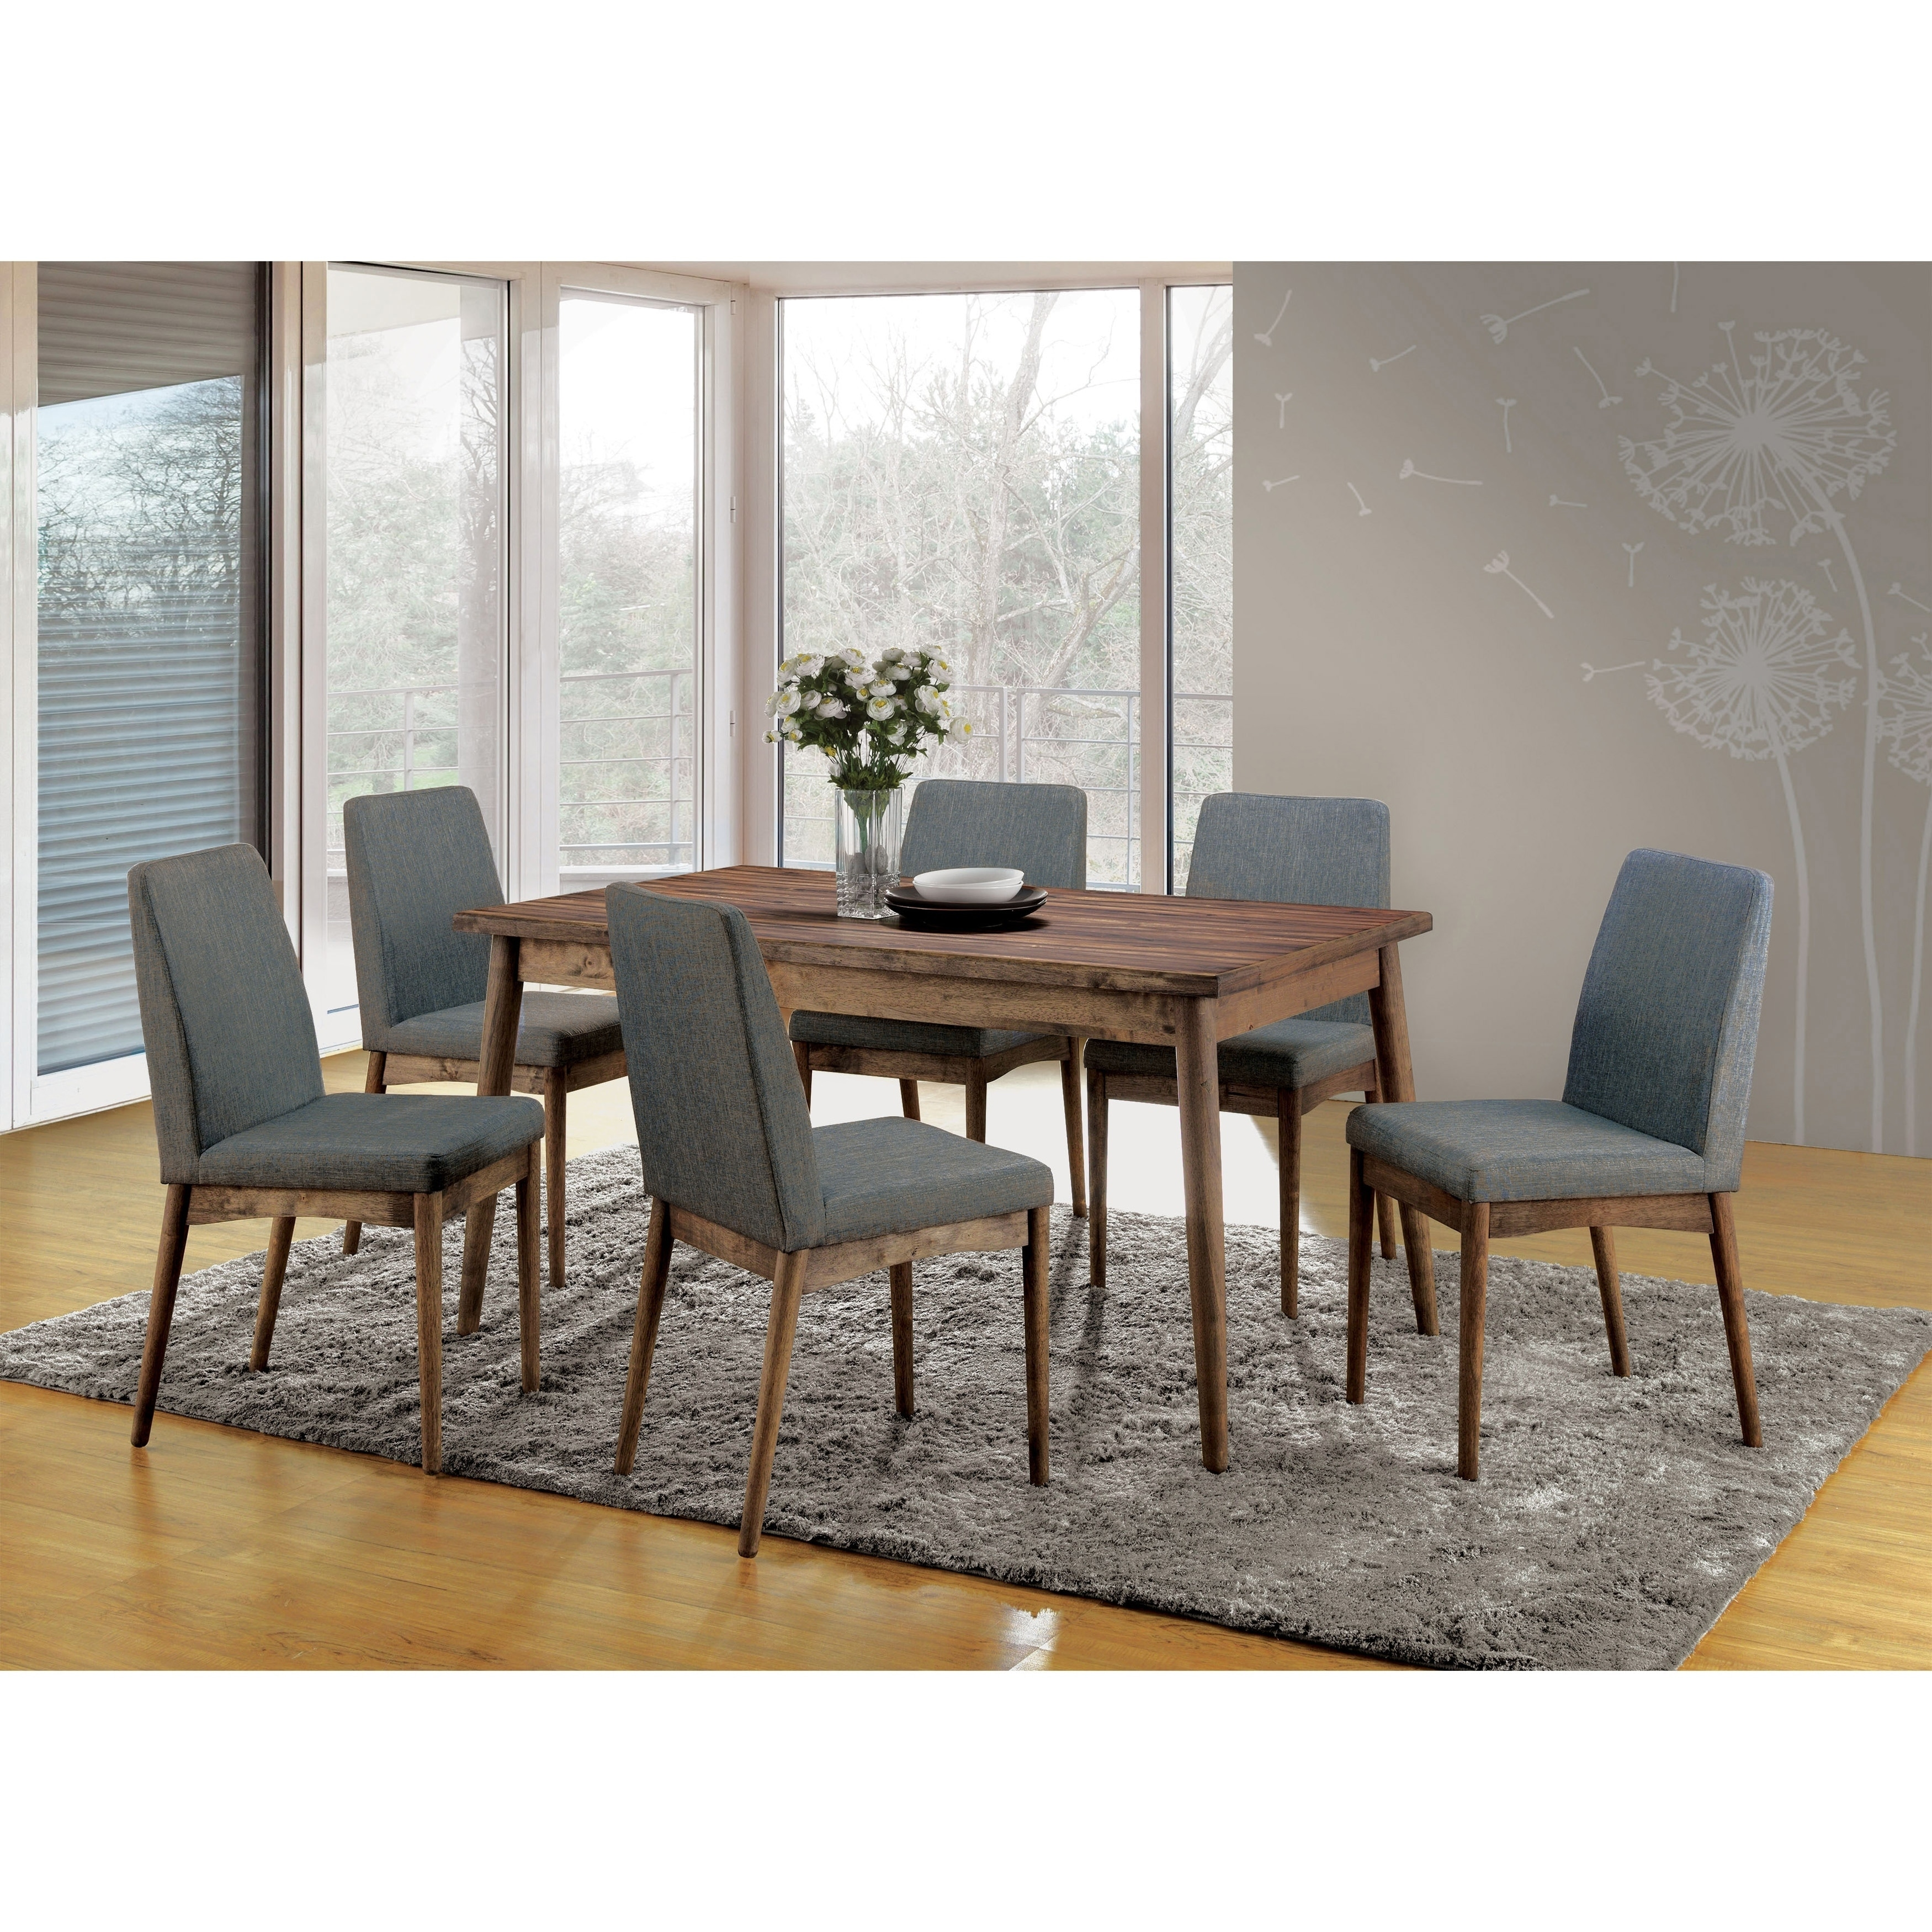 Dining Room Set Mid Century Modern 7 Piece Rustic Wood Table Grey